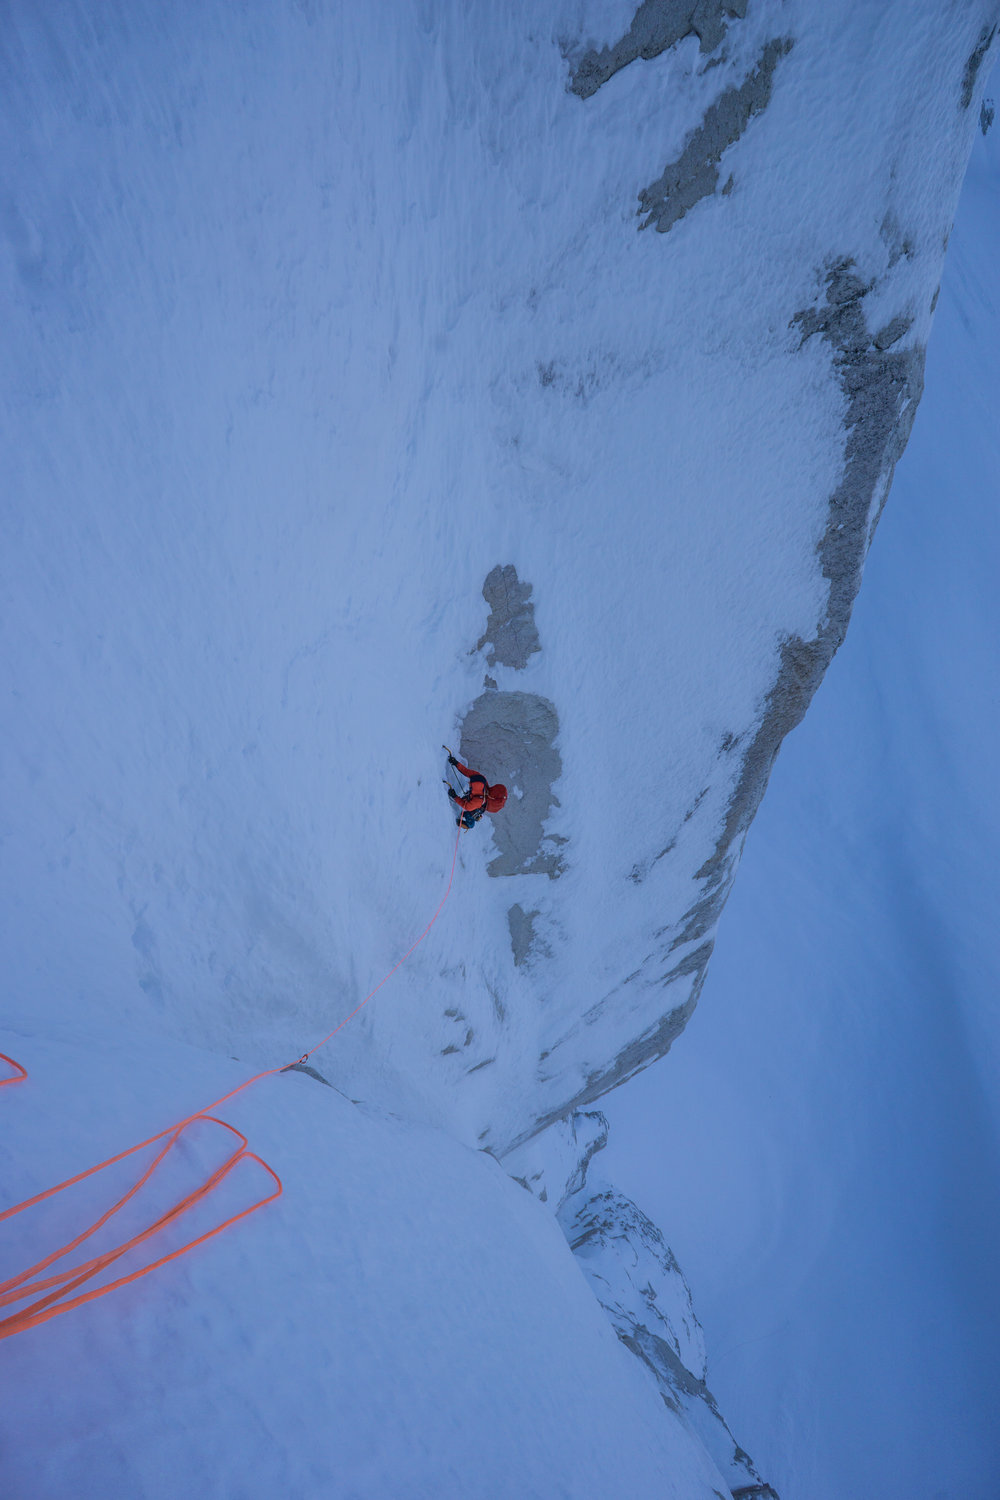 Uisdean seconding a 'don't fall off' pitch of steep nevé on our north face attempt.